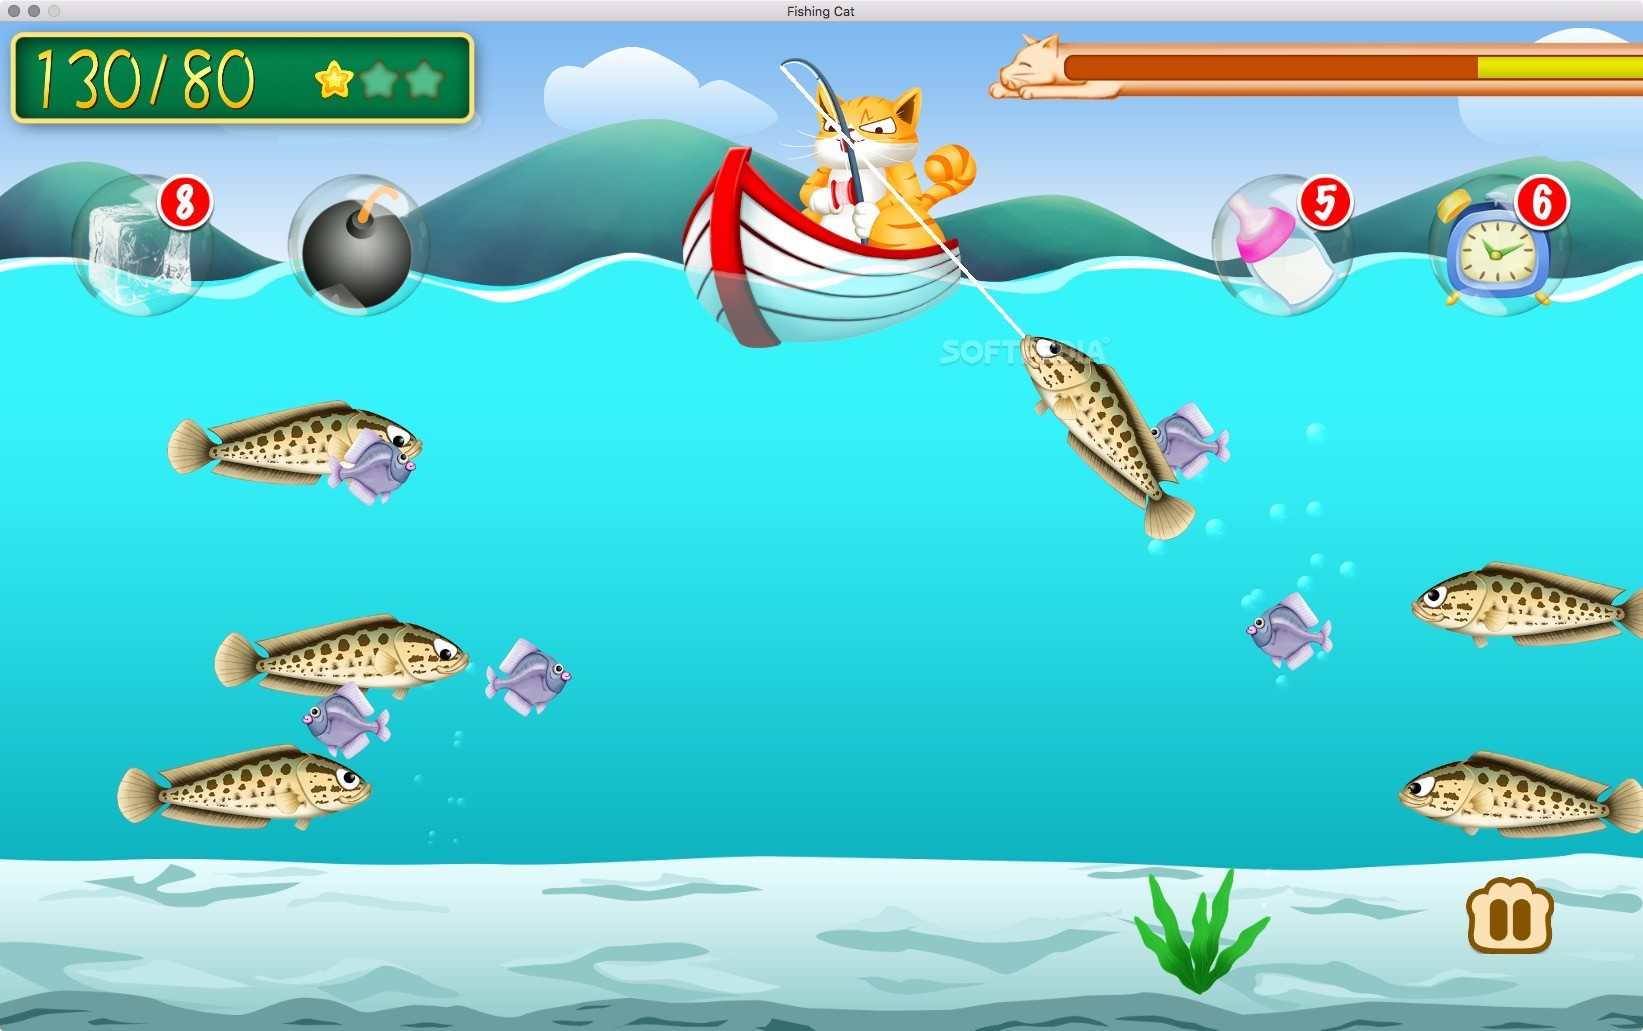 Download fishing cat mac 1 2 4 for Fish cat game